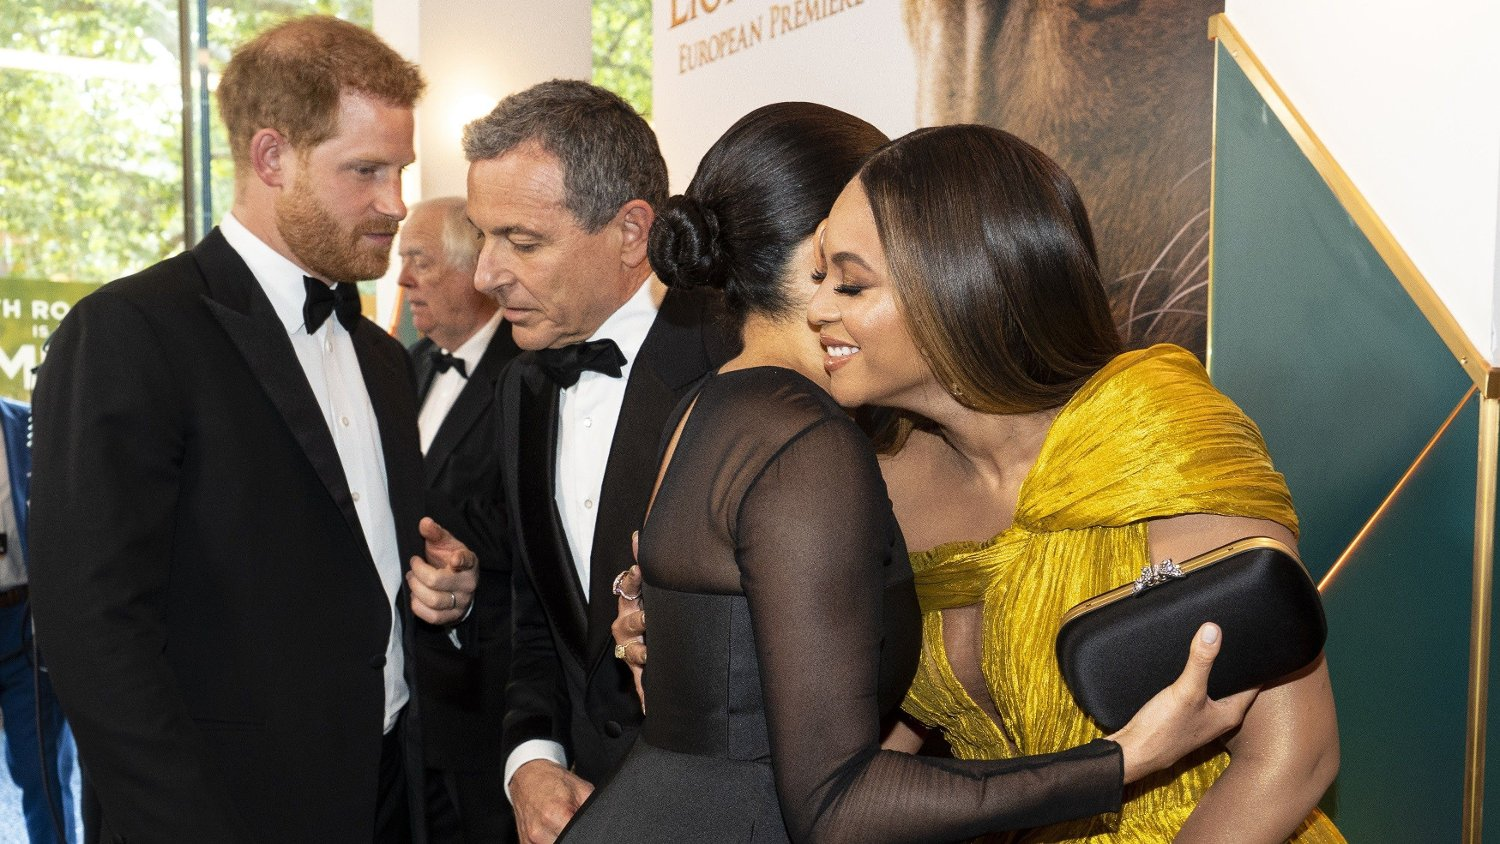 Duke and Duchess of Sussex - 2019 File photo dated 14/07/19 of the Duchess of Sussex embracing Beyonce at the European Premiere of Disney's The Lion King at the Odeon Leicester Square, London, as the PA news agency looks back on the royal couple's year.